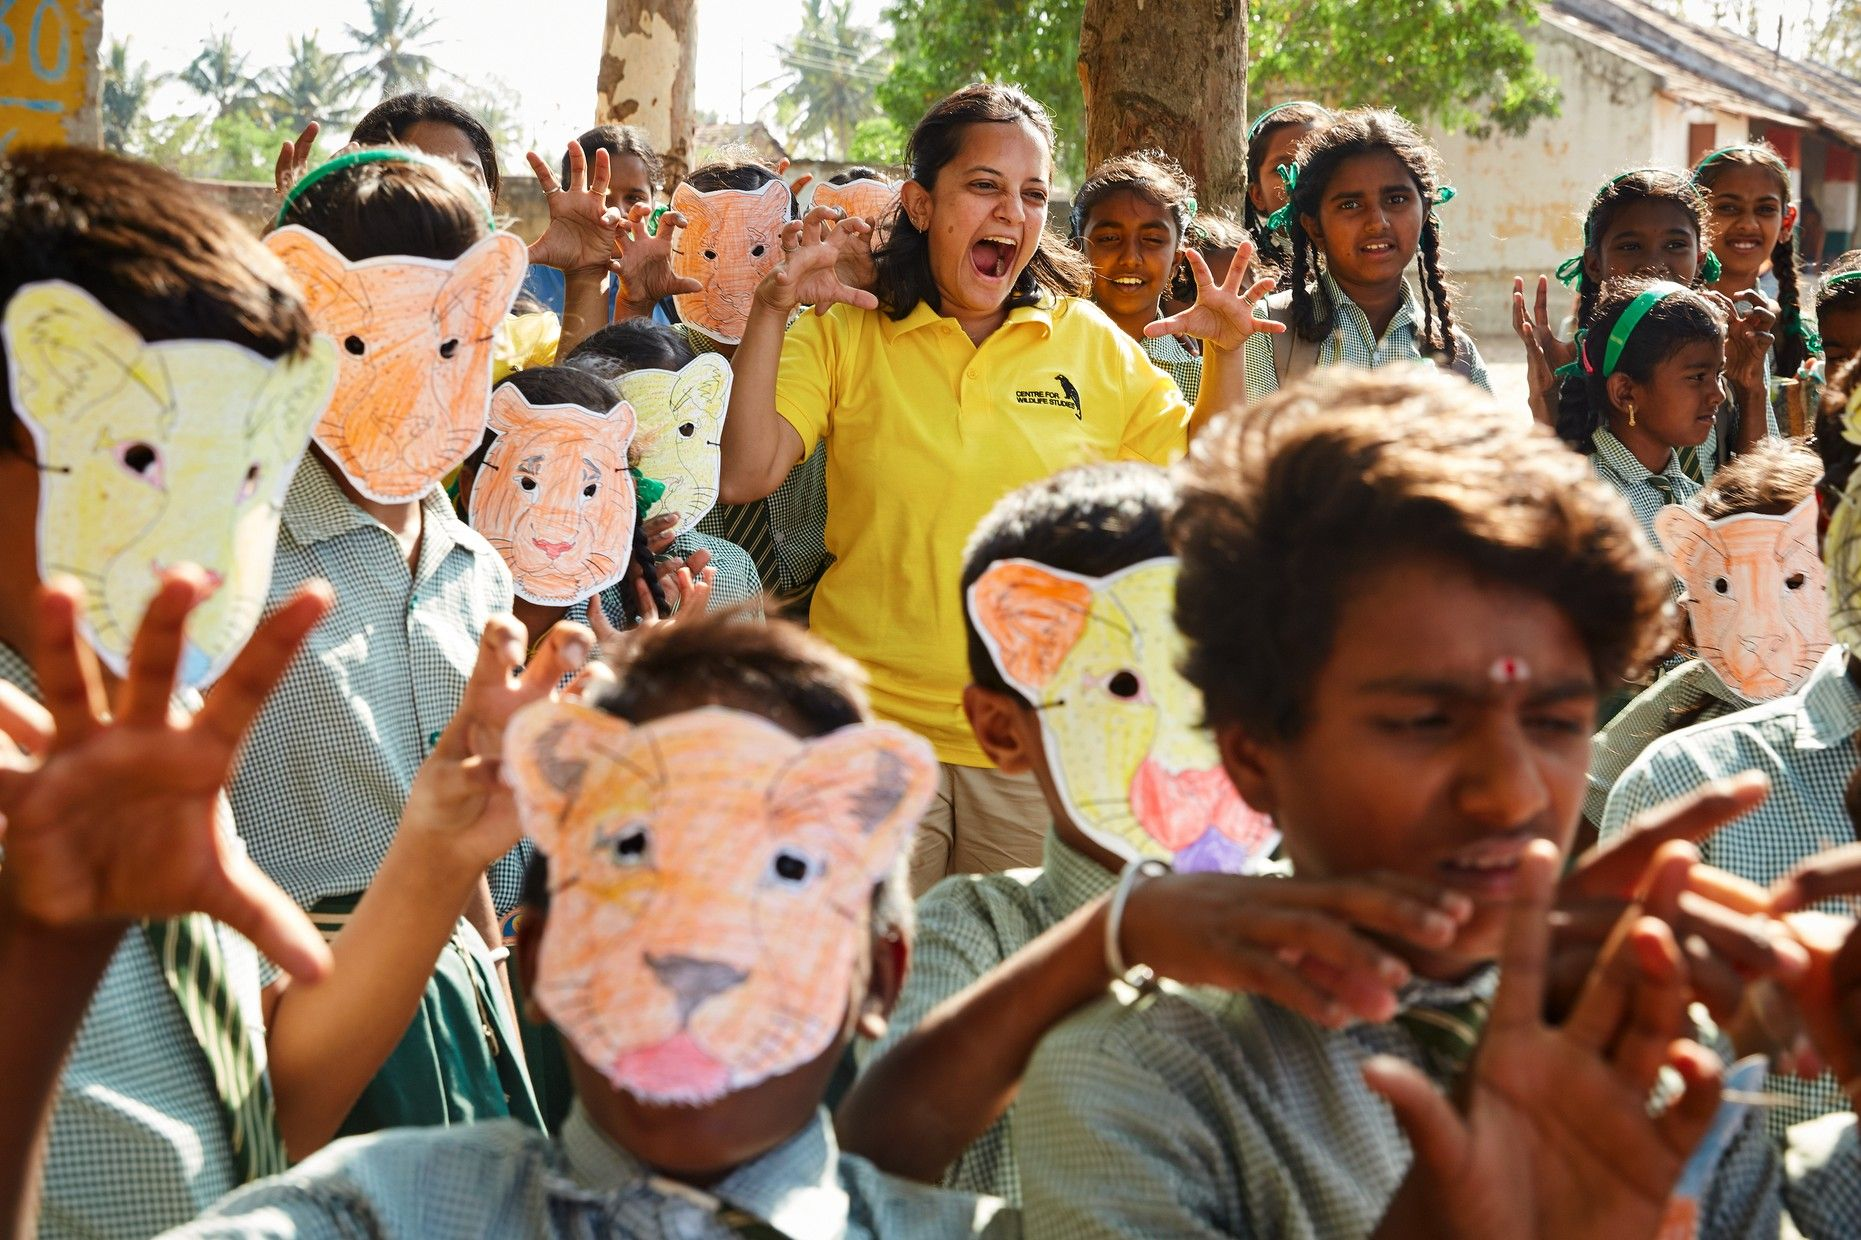 Krithi Karanth (in yellow) participates in a school workshop by Wild Shaale, as part of its education outreach